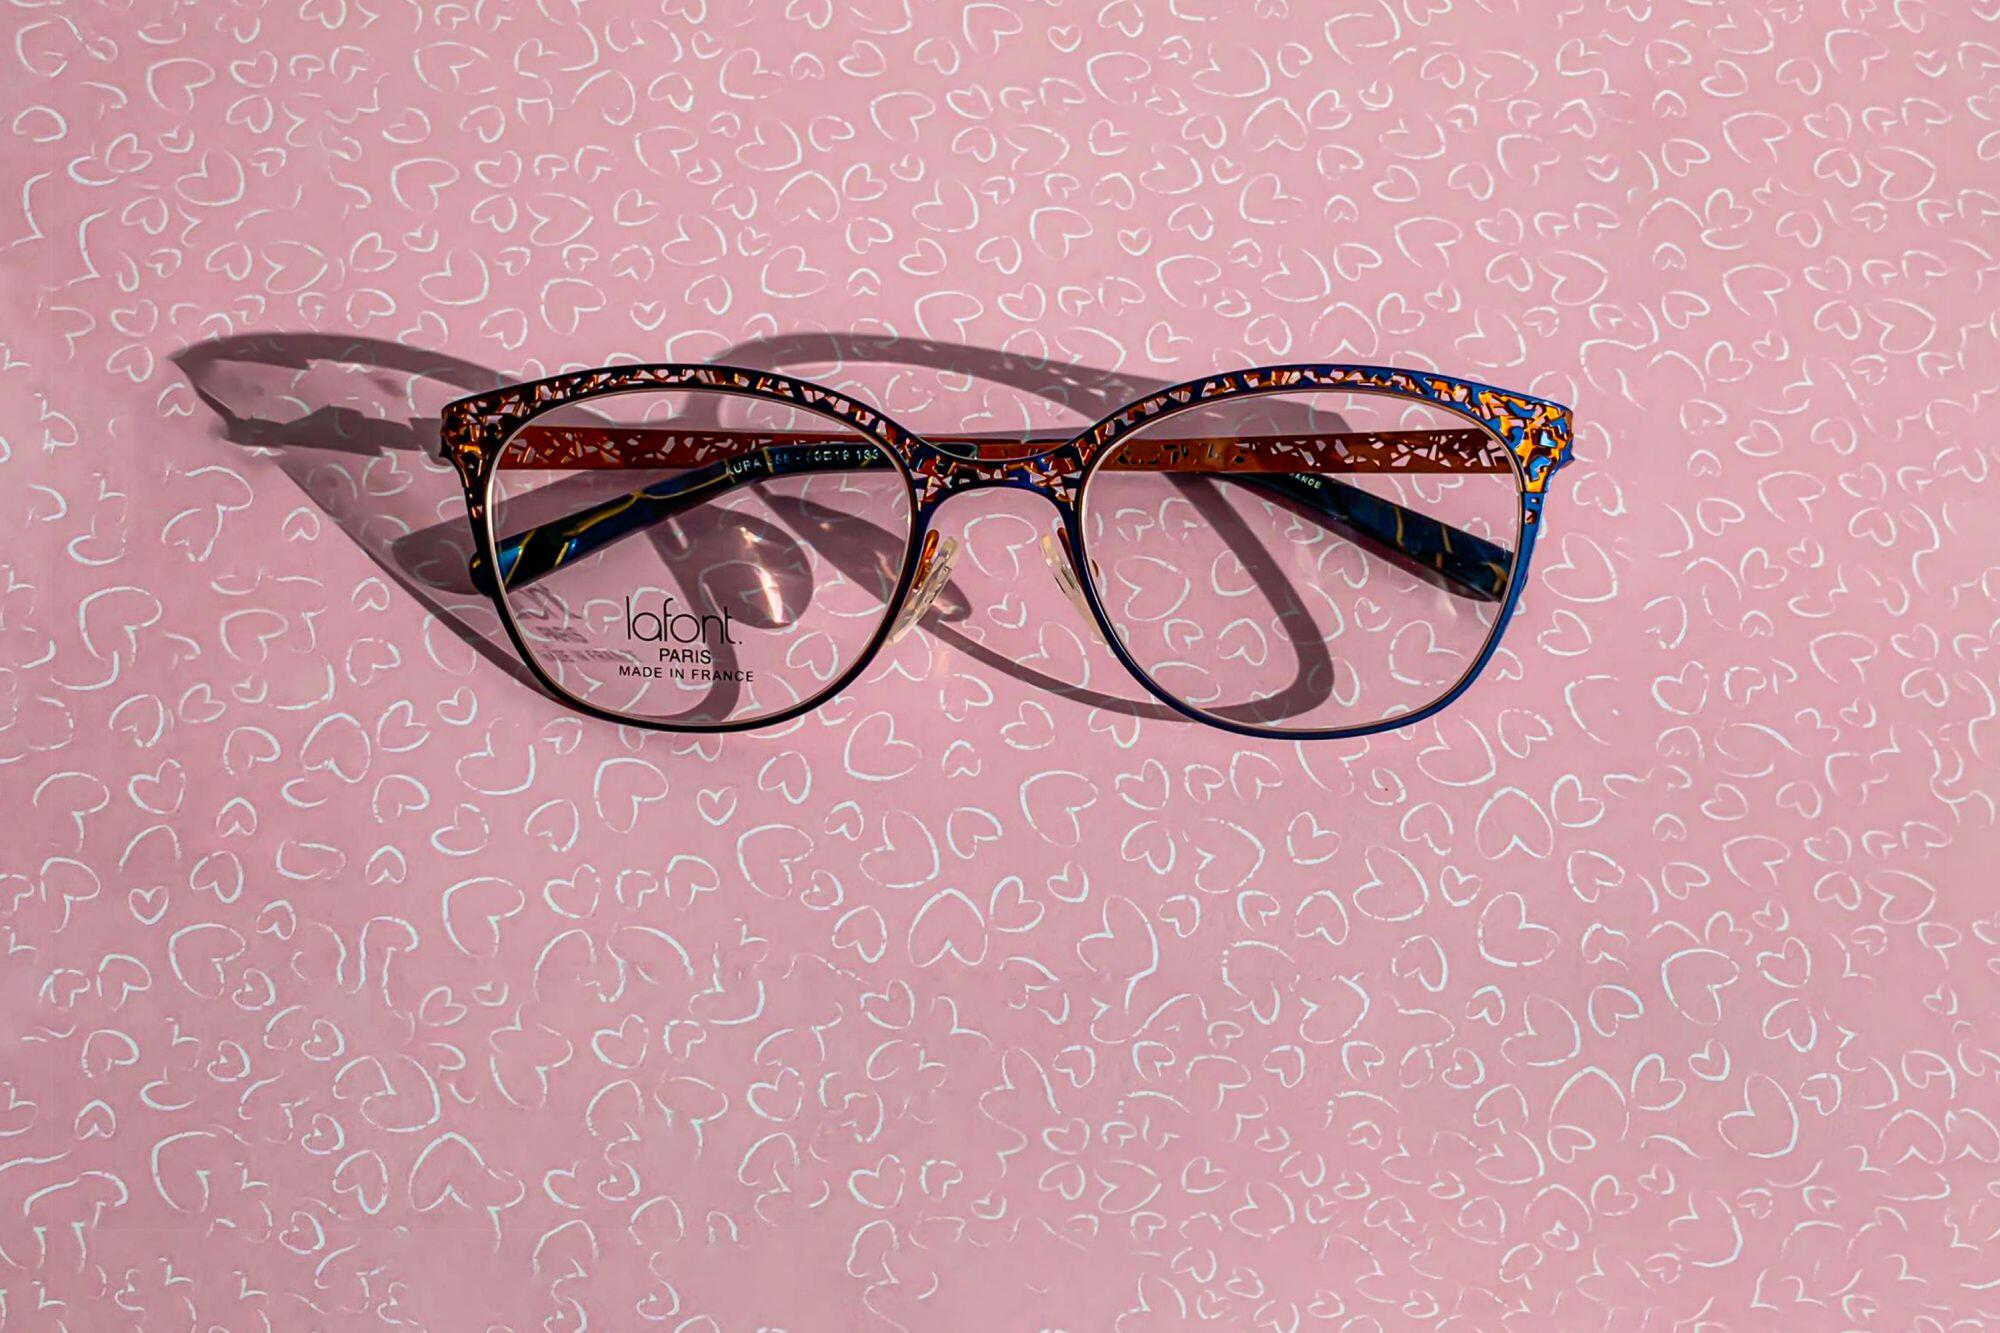 Lafont Spectacles: An Icon For Fashion Eyewear